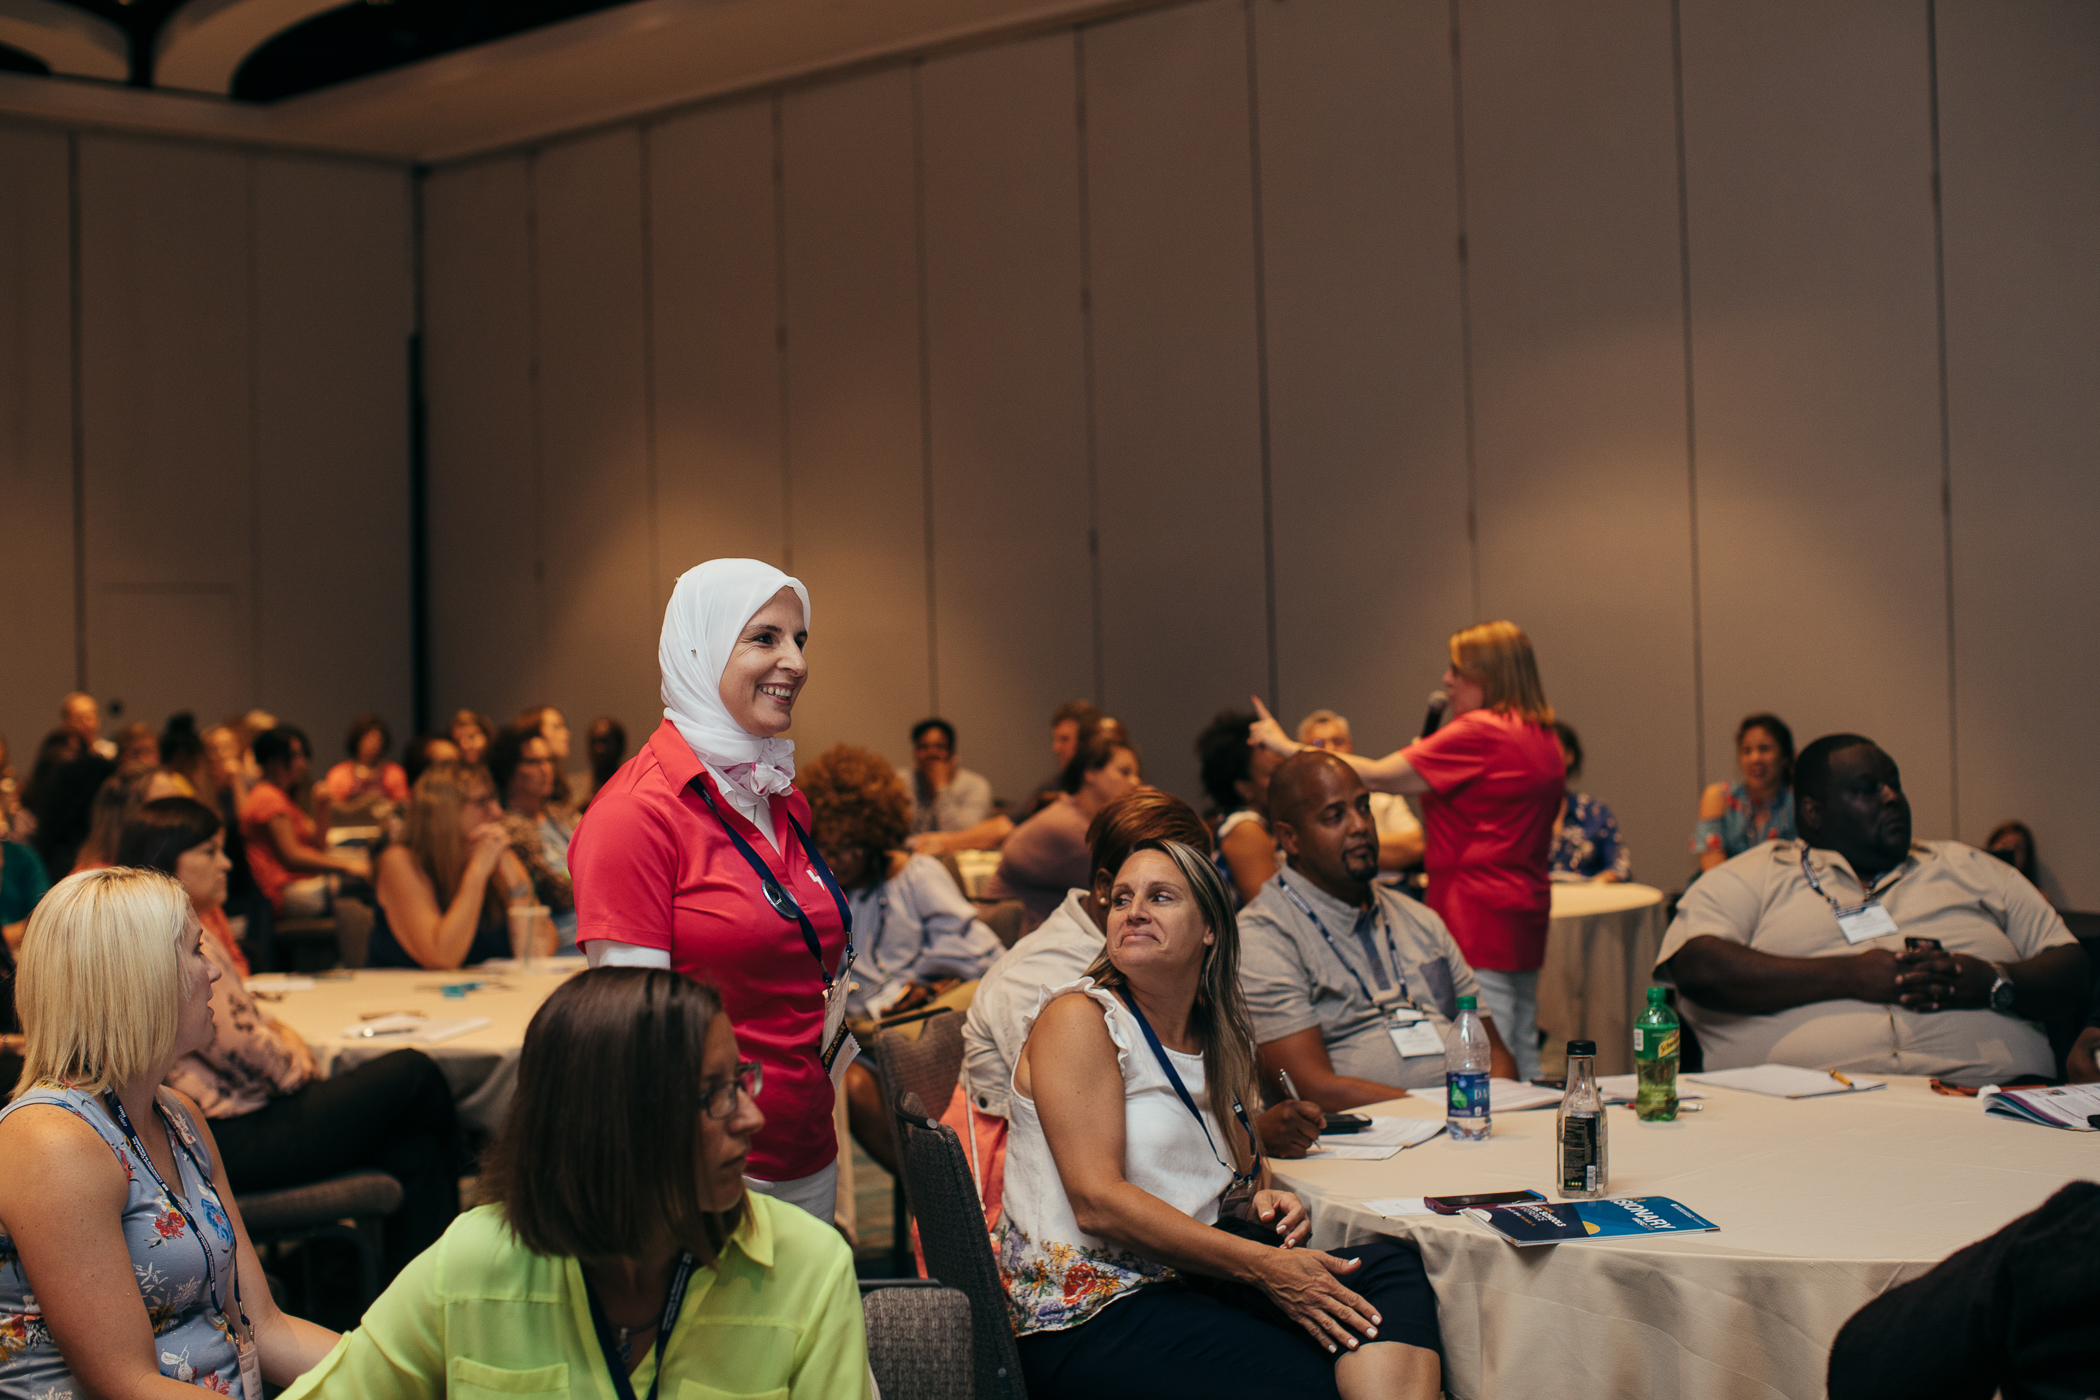 live event commercial photography brand storytelling for education florida conference photographer ©2018abigailbobophotography-63.jpg